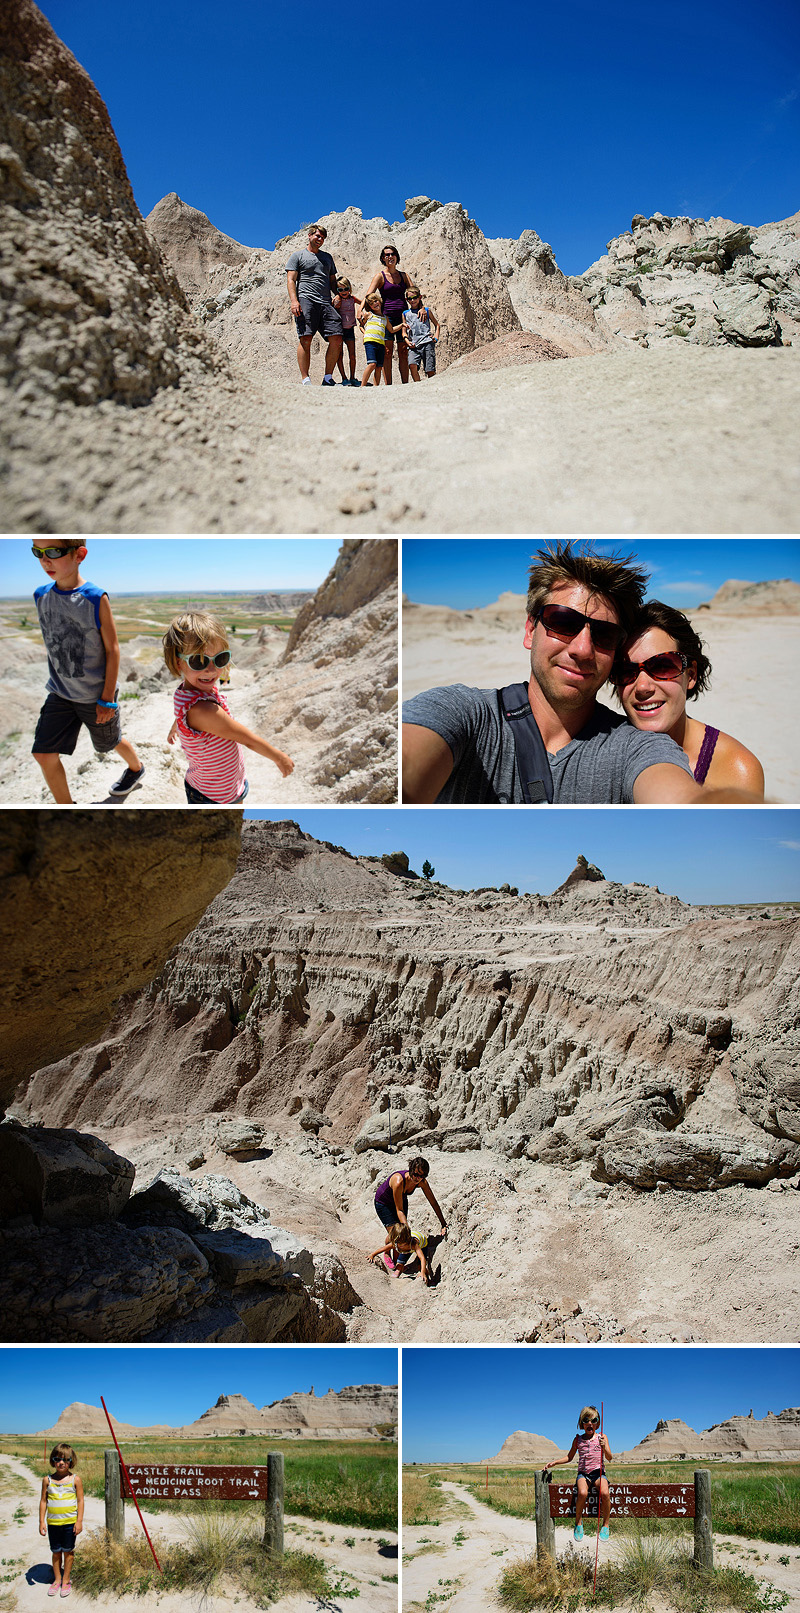 kids hiking in the badlands